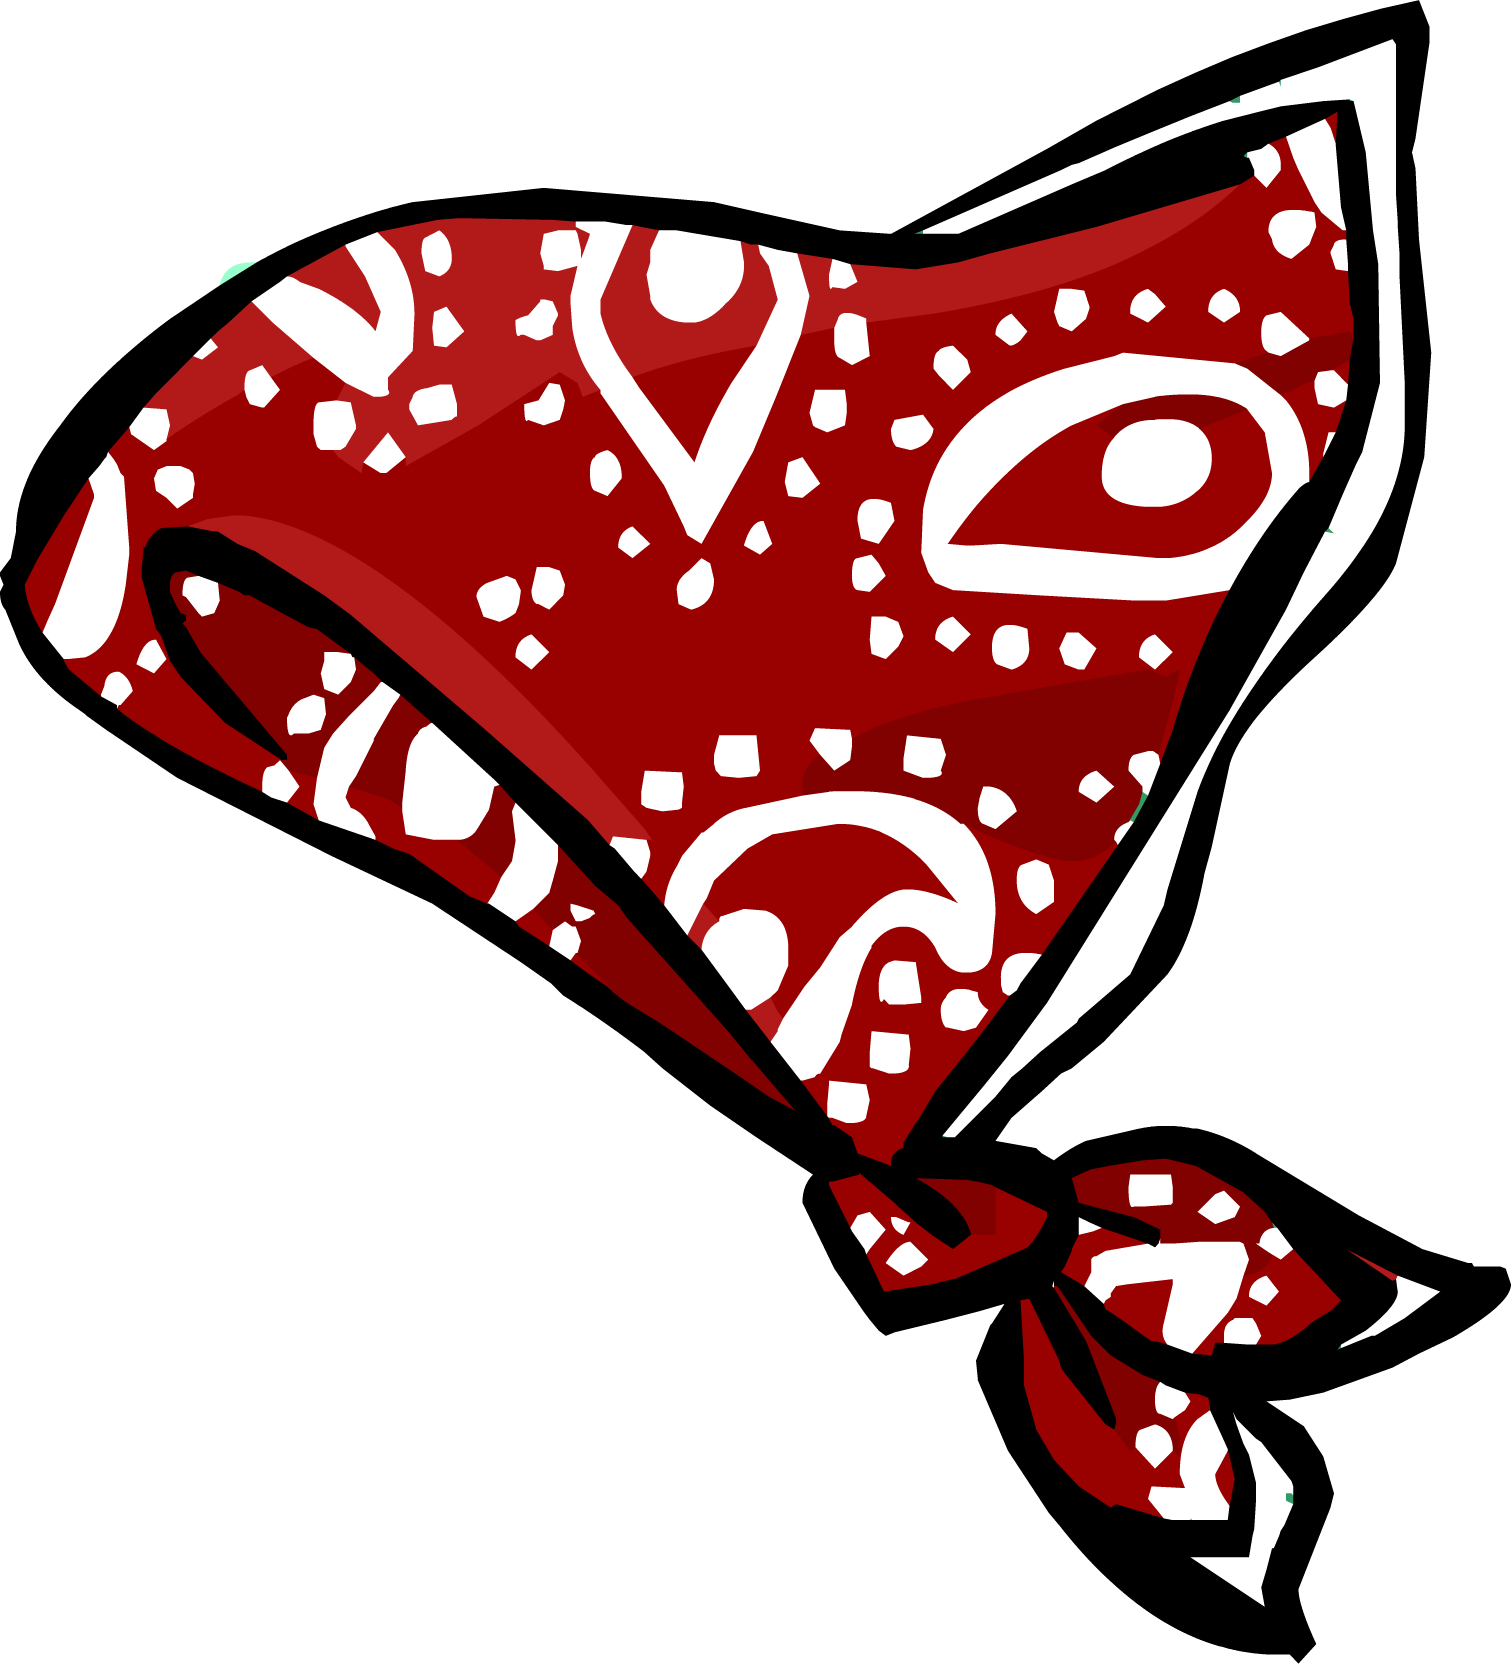 Swimsuit clipart red. Paisley bandanna club penguin